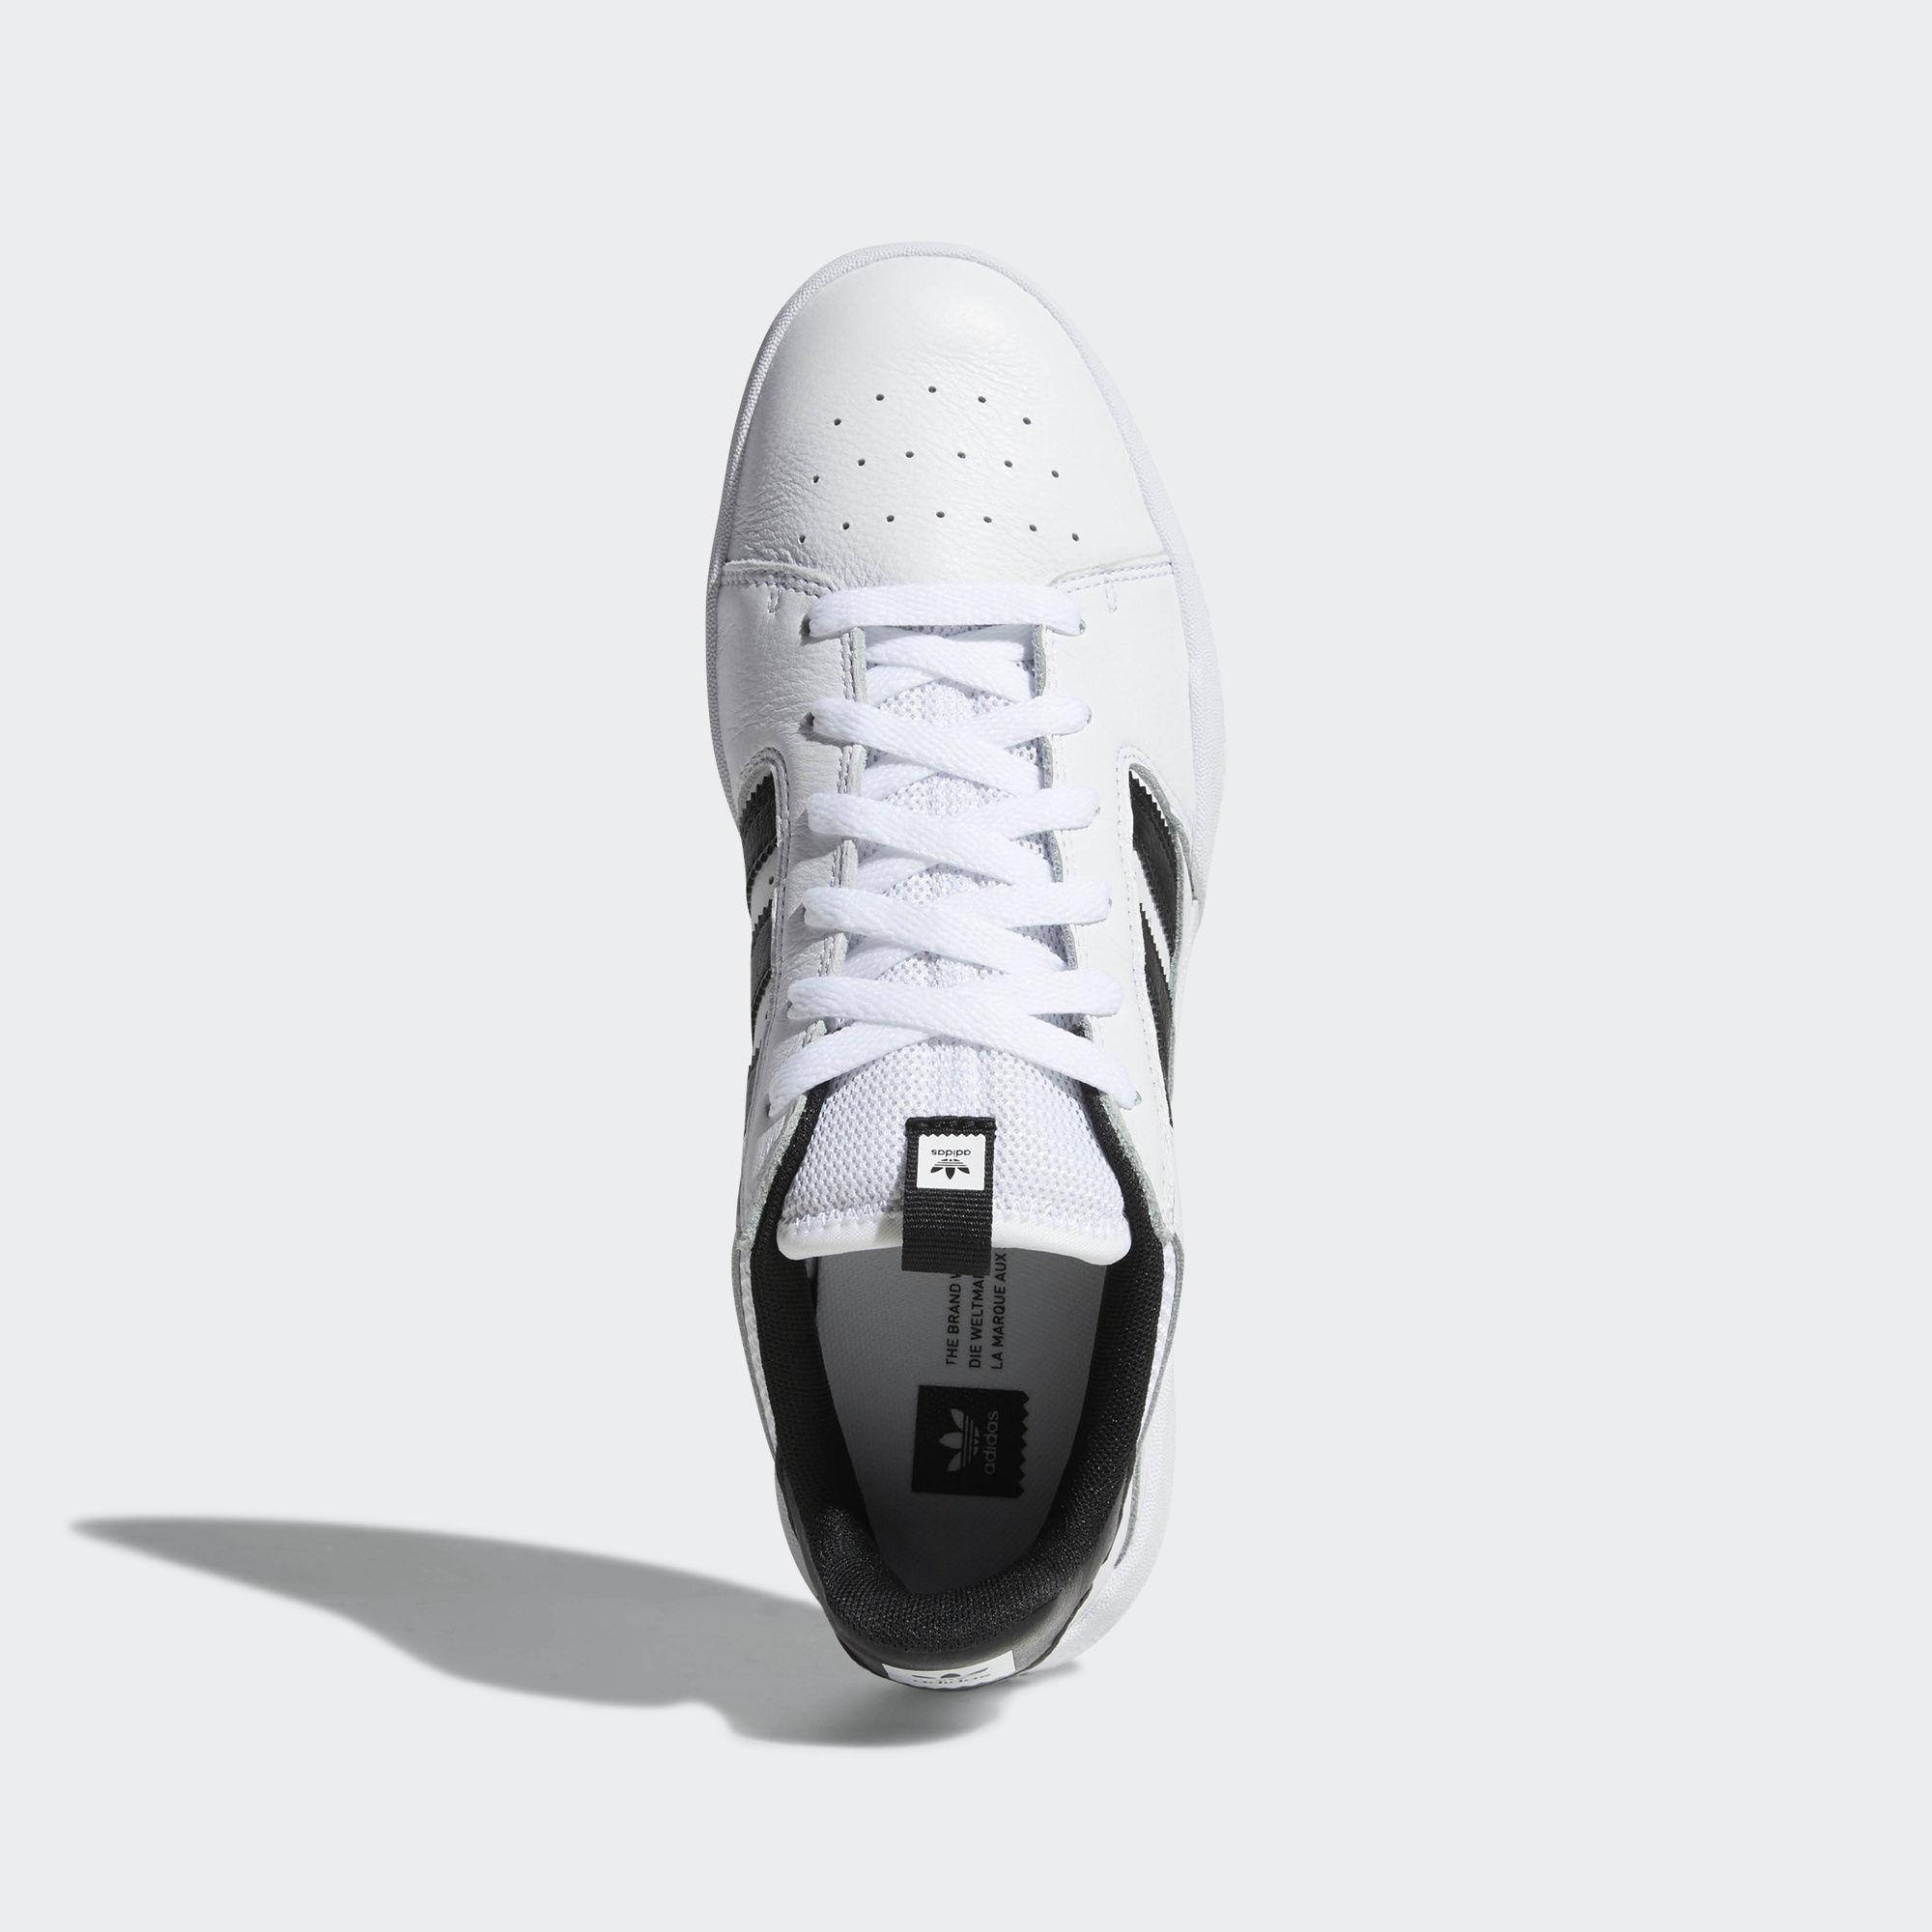 Adidas - White Vrx Cup Low Shoes for Men - Lyst. View fullscreen 5f0a970a5